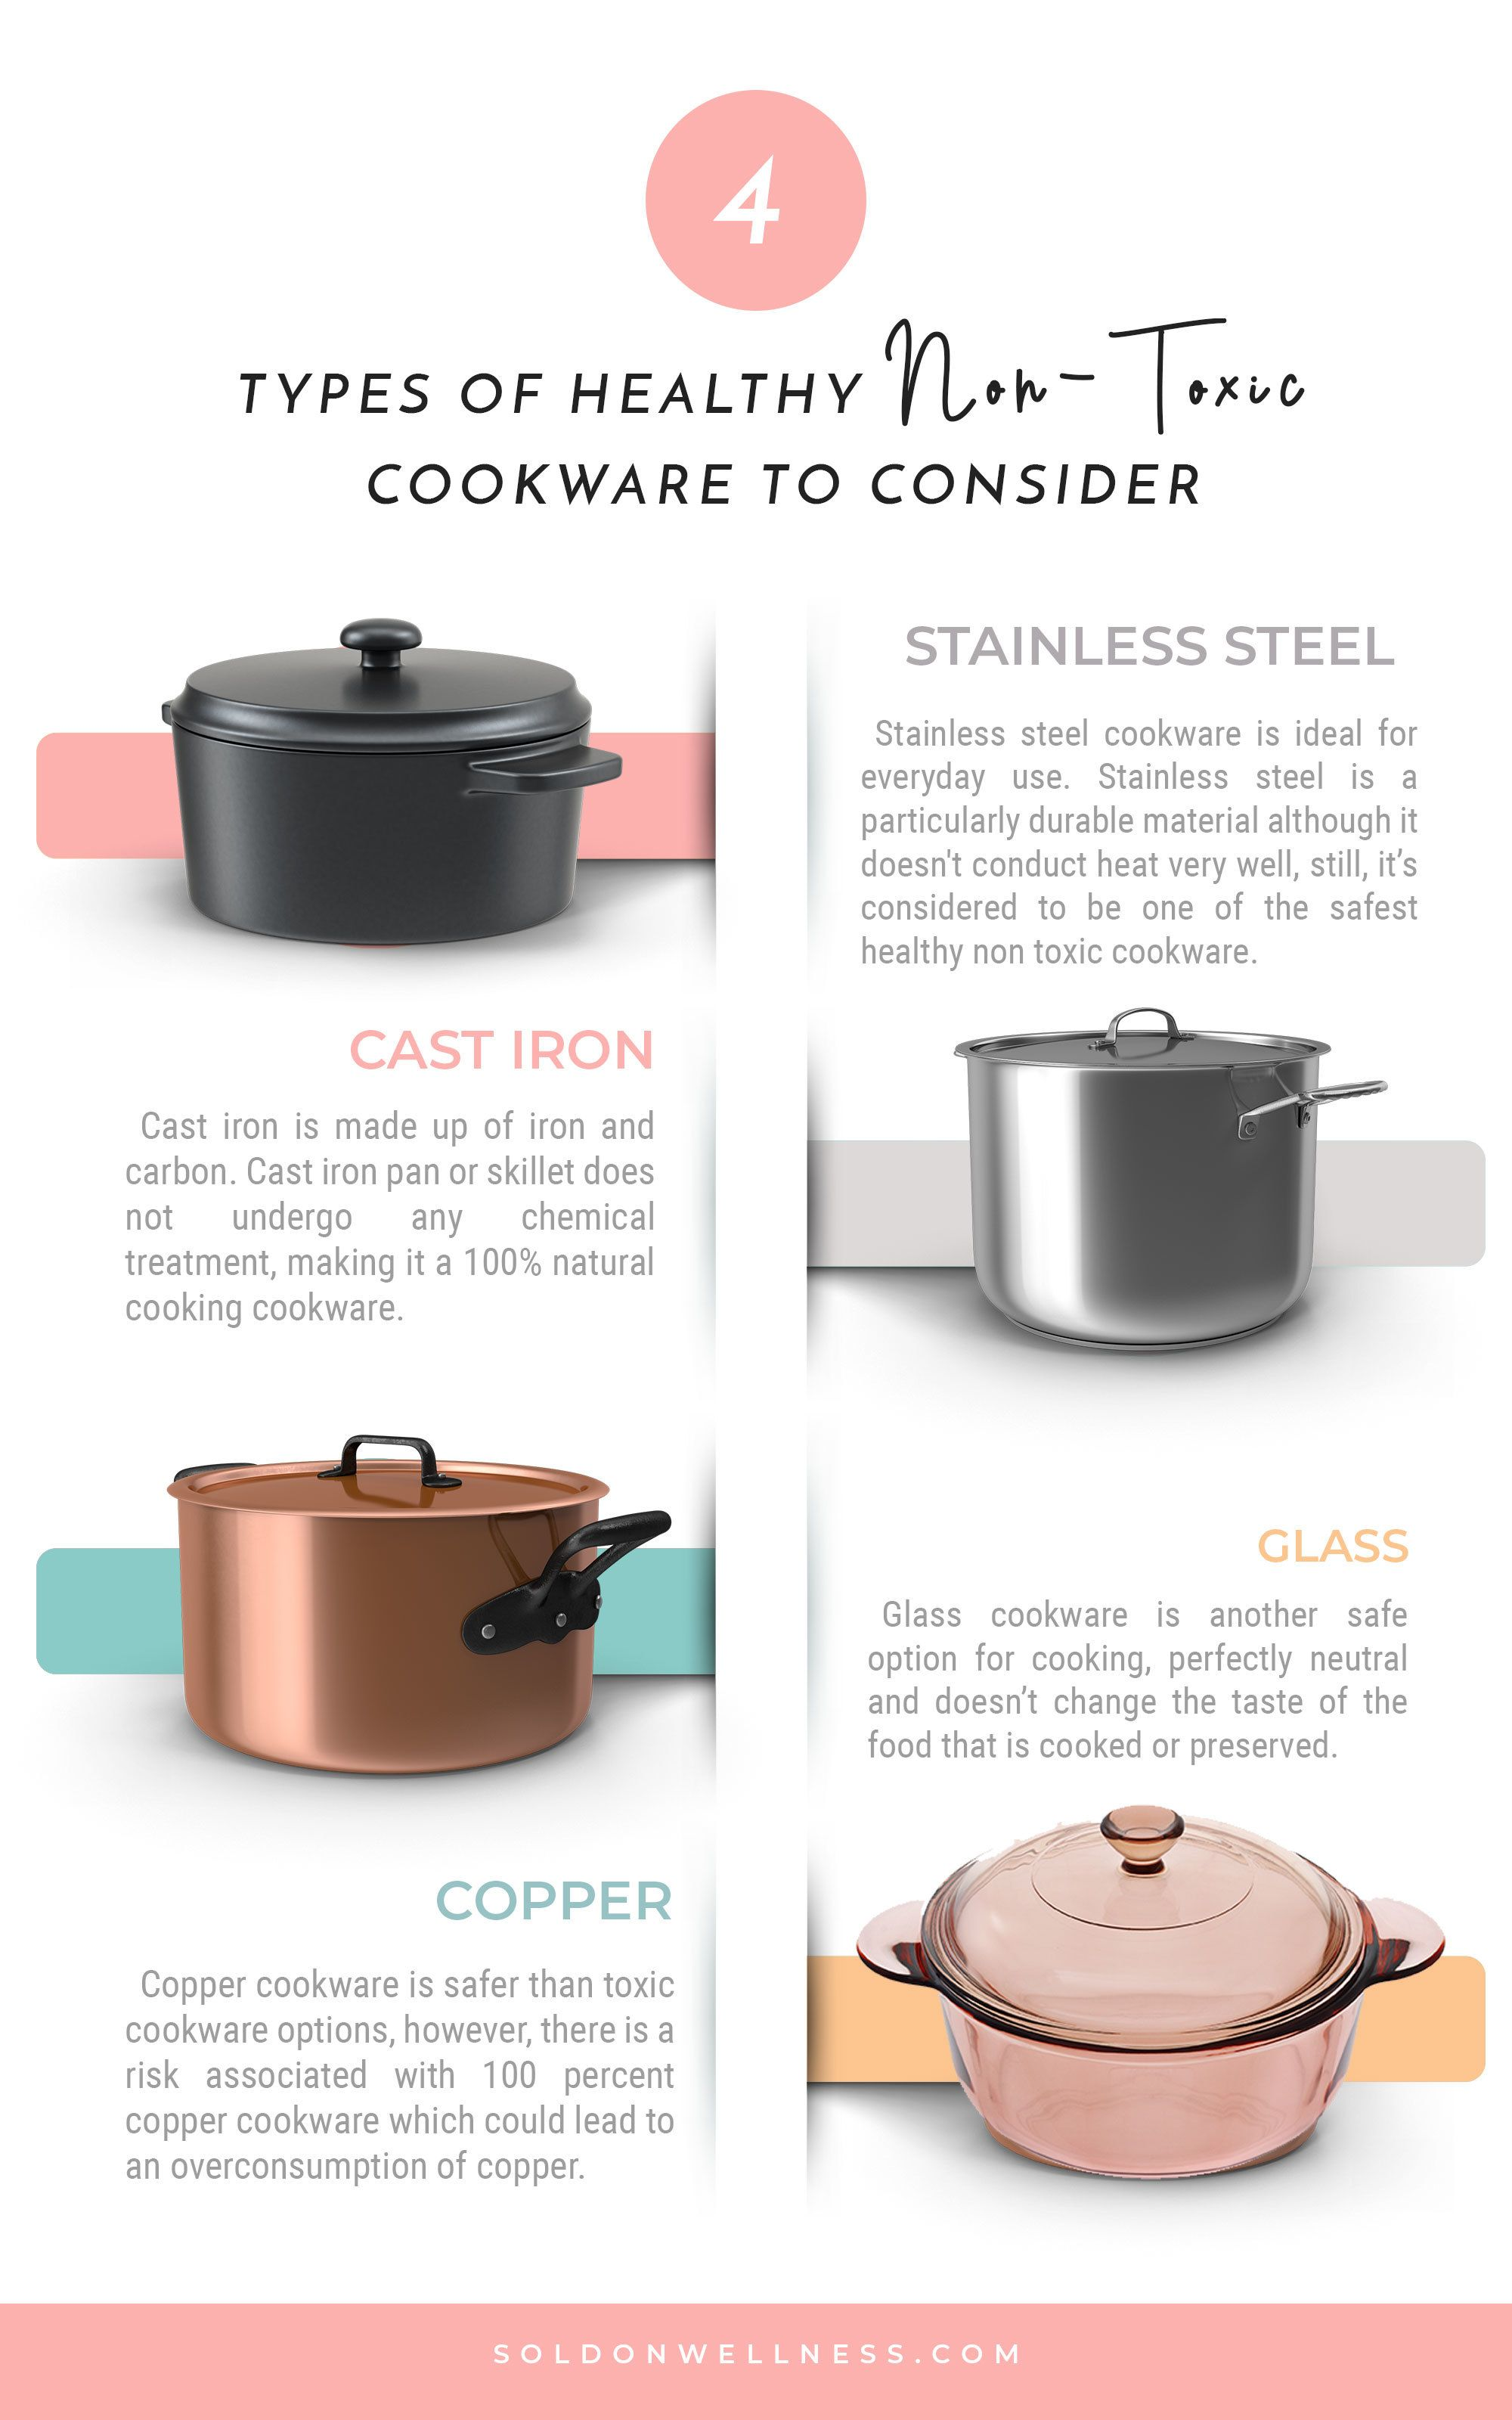 Types of Healthy Non-Toxic Cookware to Consider | Sold On